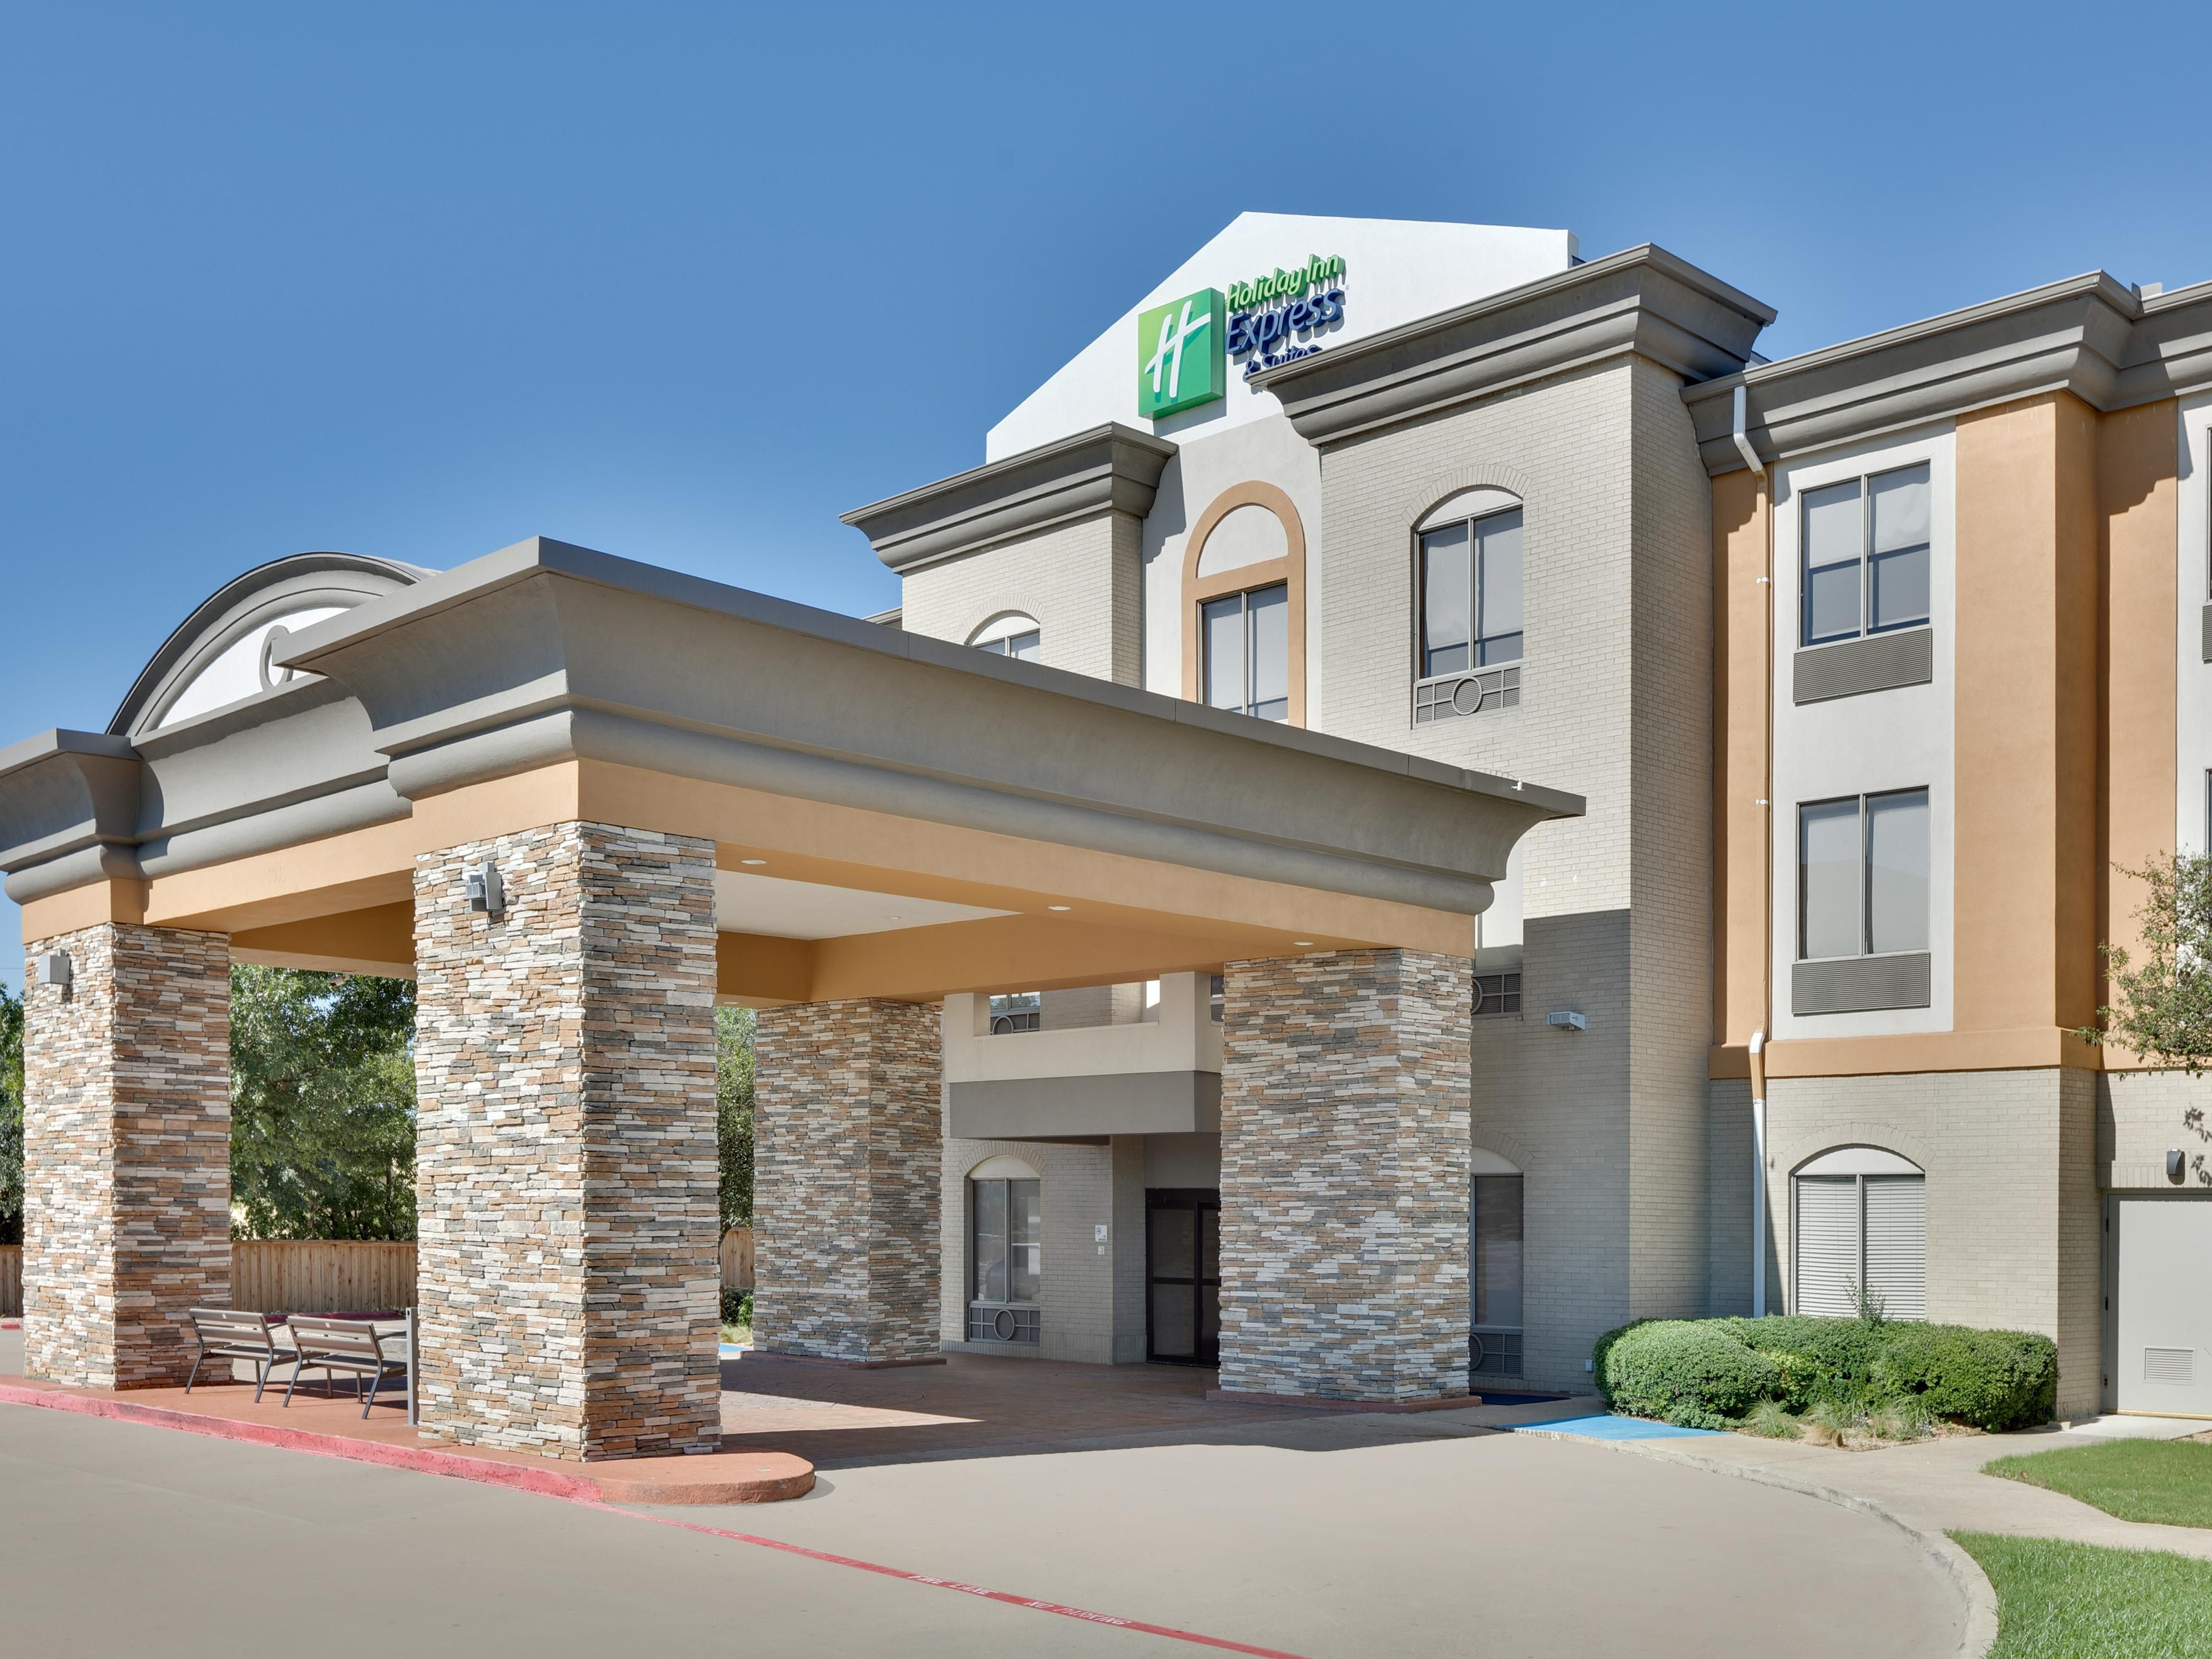 0f1b0964c25b Staybridge Suites Dallas Extended Stay Hotel Suites by IHG